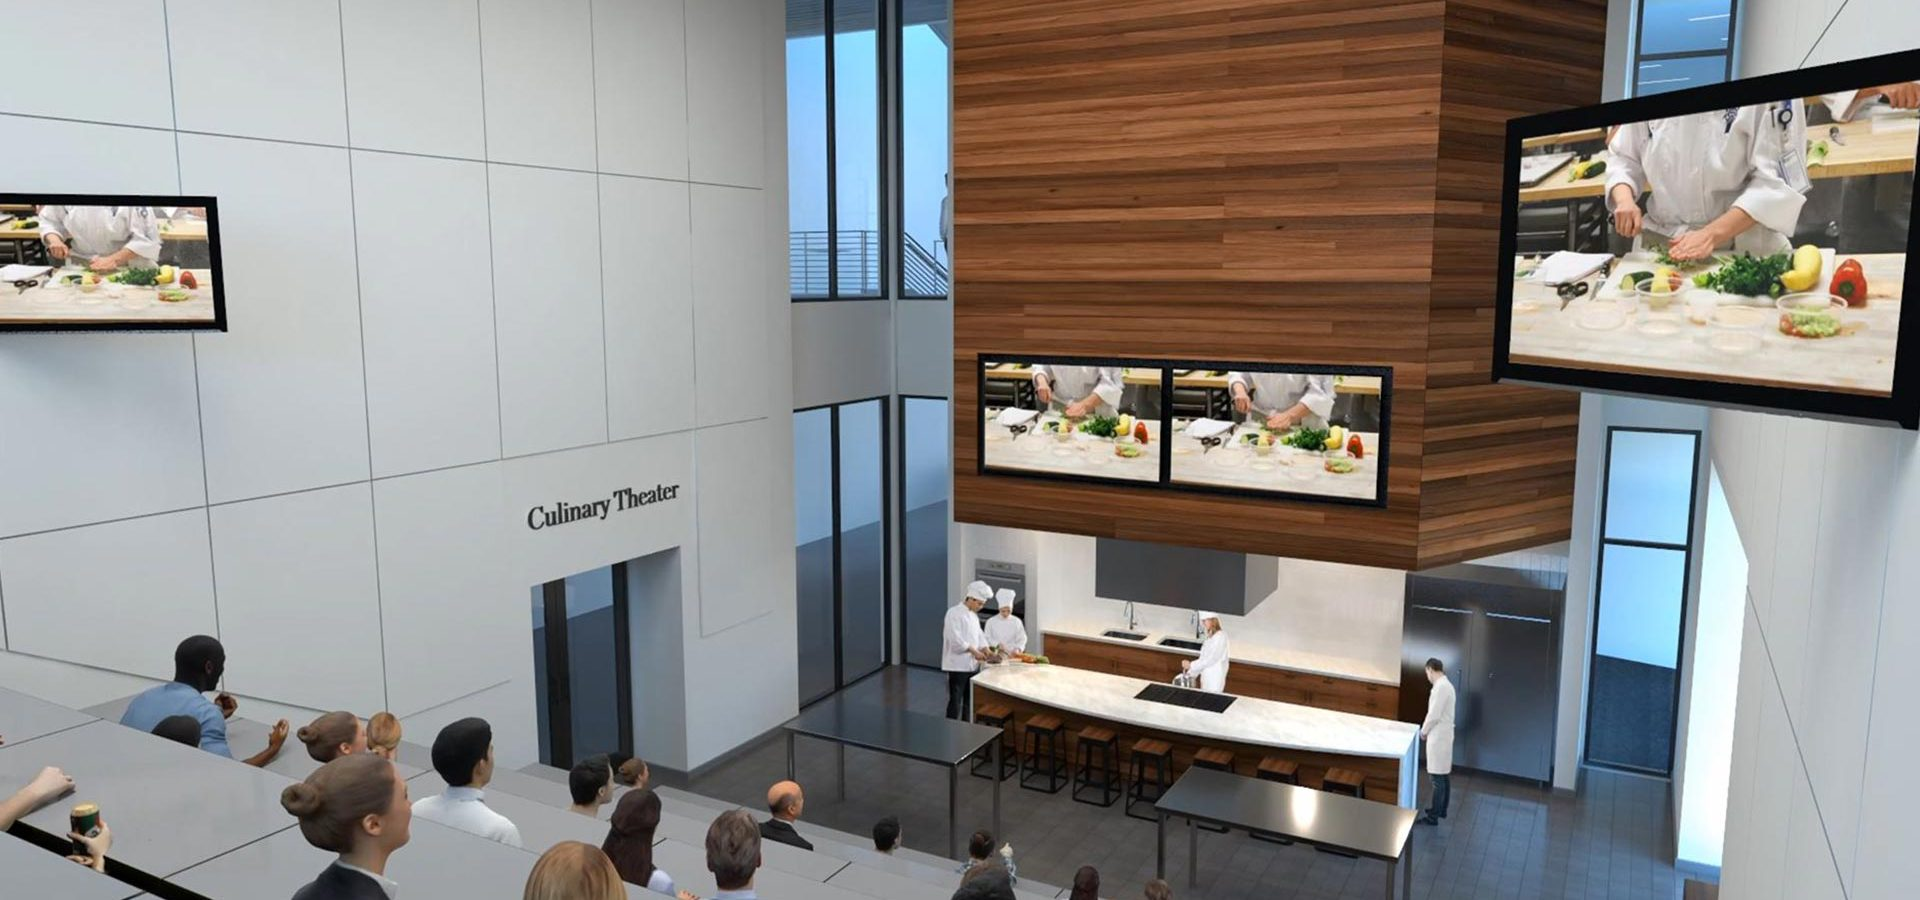 Culinary Theater Render at Mitchell Hall